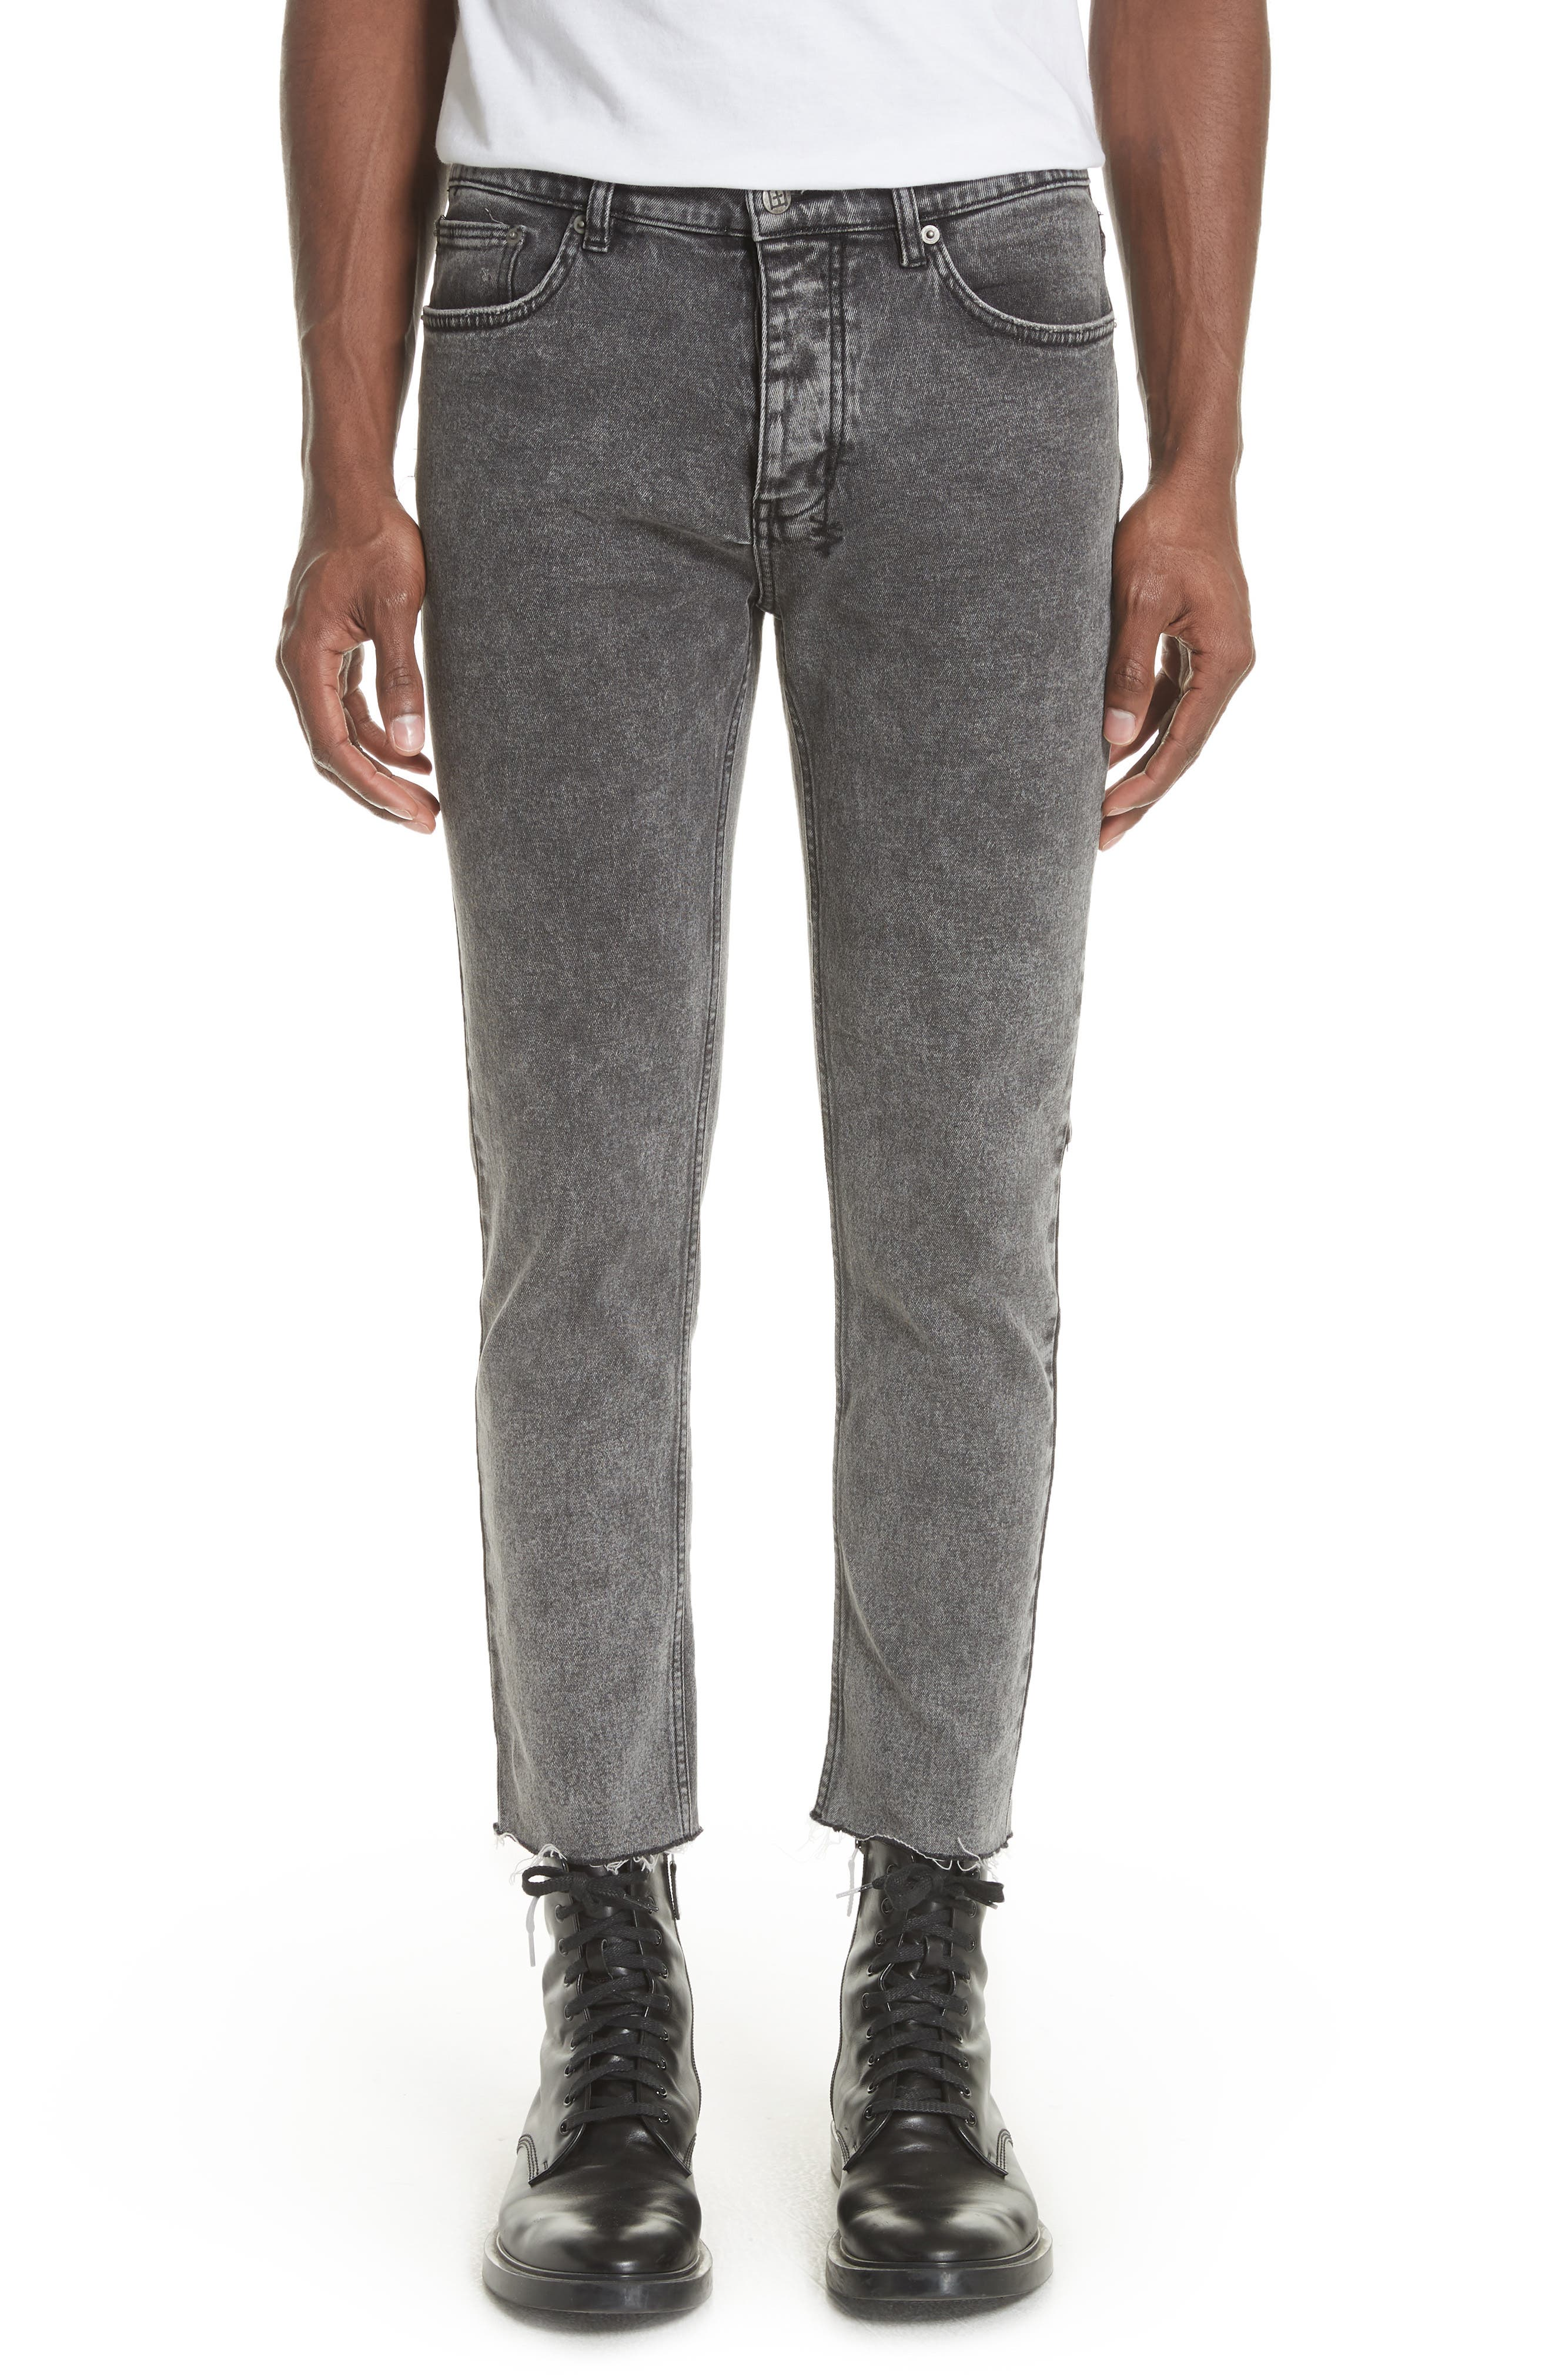 Chitch Chop Acid Attack Cropped Jeans,                         Main,                         color, BLACK